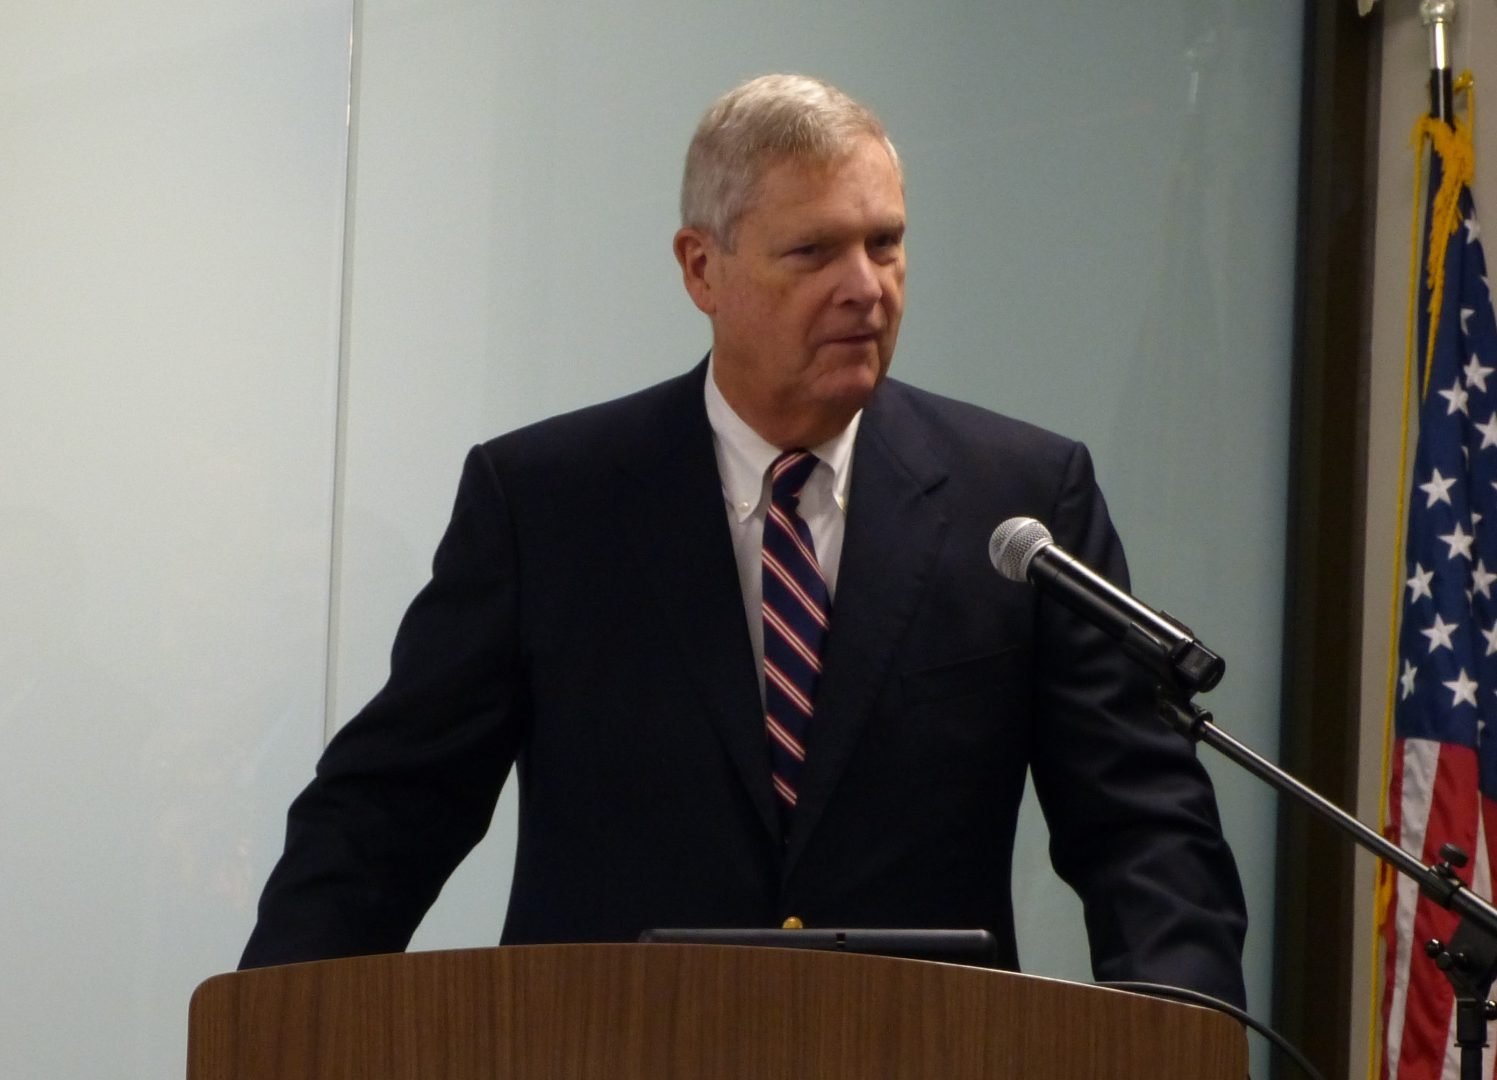 Sec. Vilsack's First Day Back Includes CFAP-AA Extension, Multi-Million Dollar Investment in Telemedicine